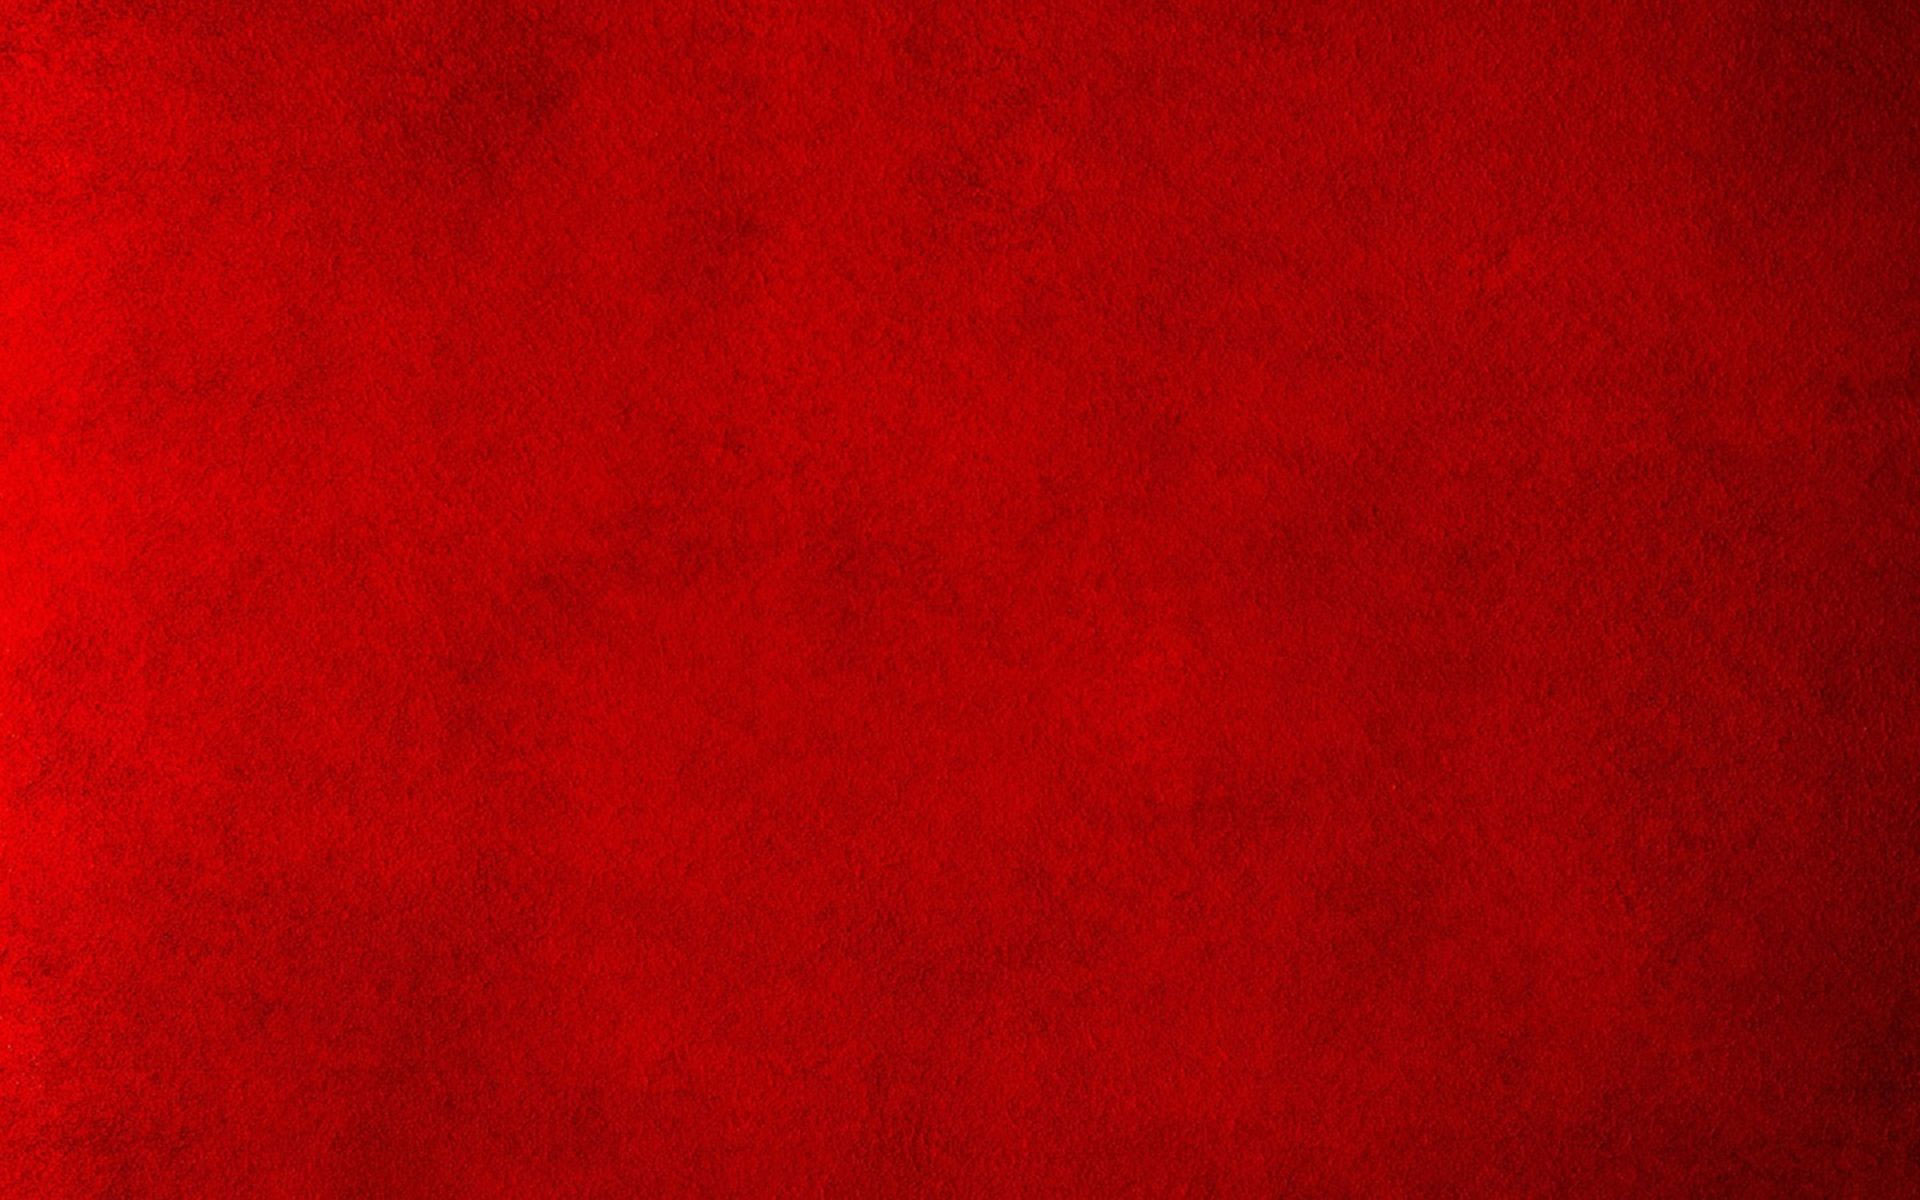 Red Wallpaper 29